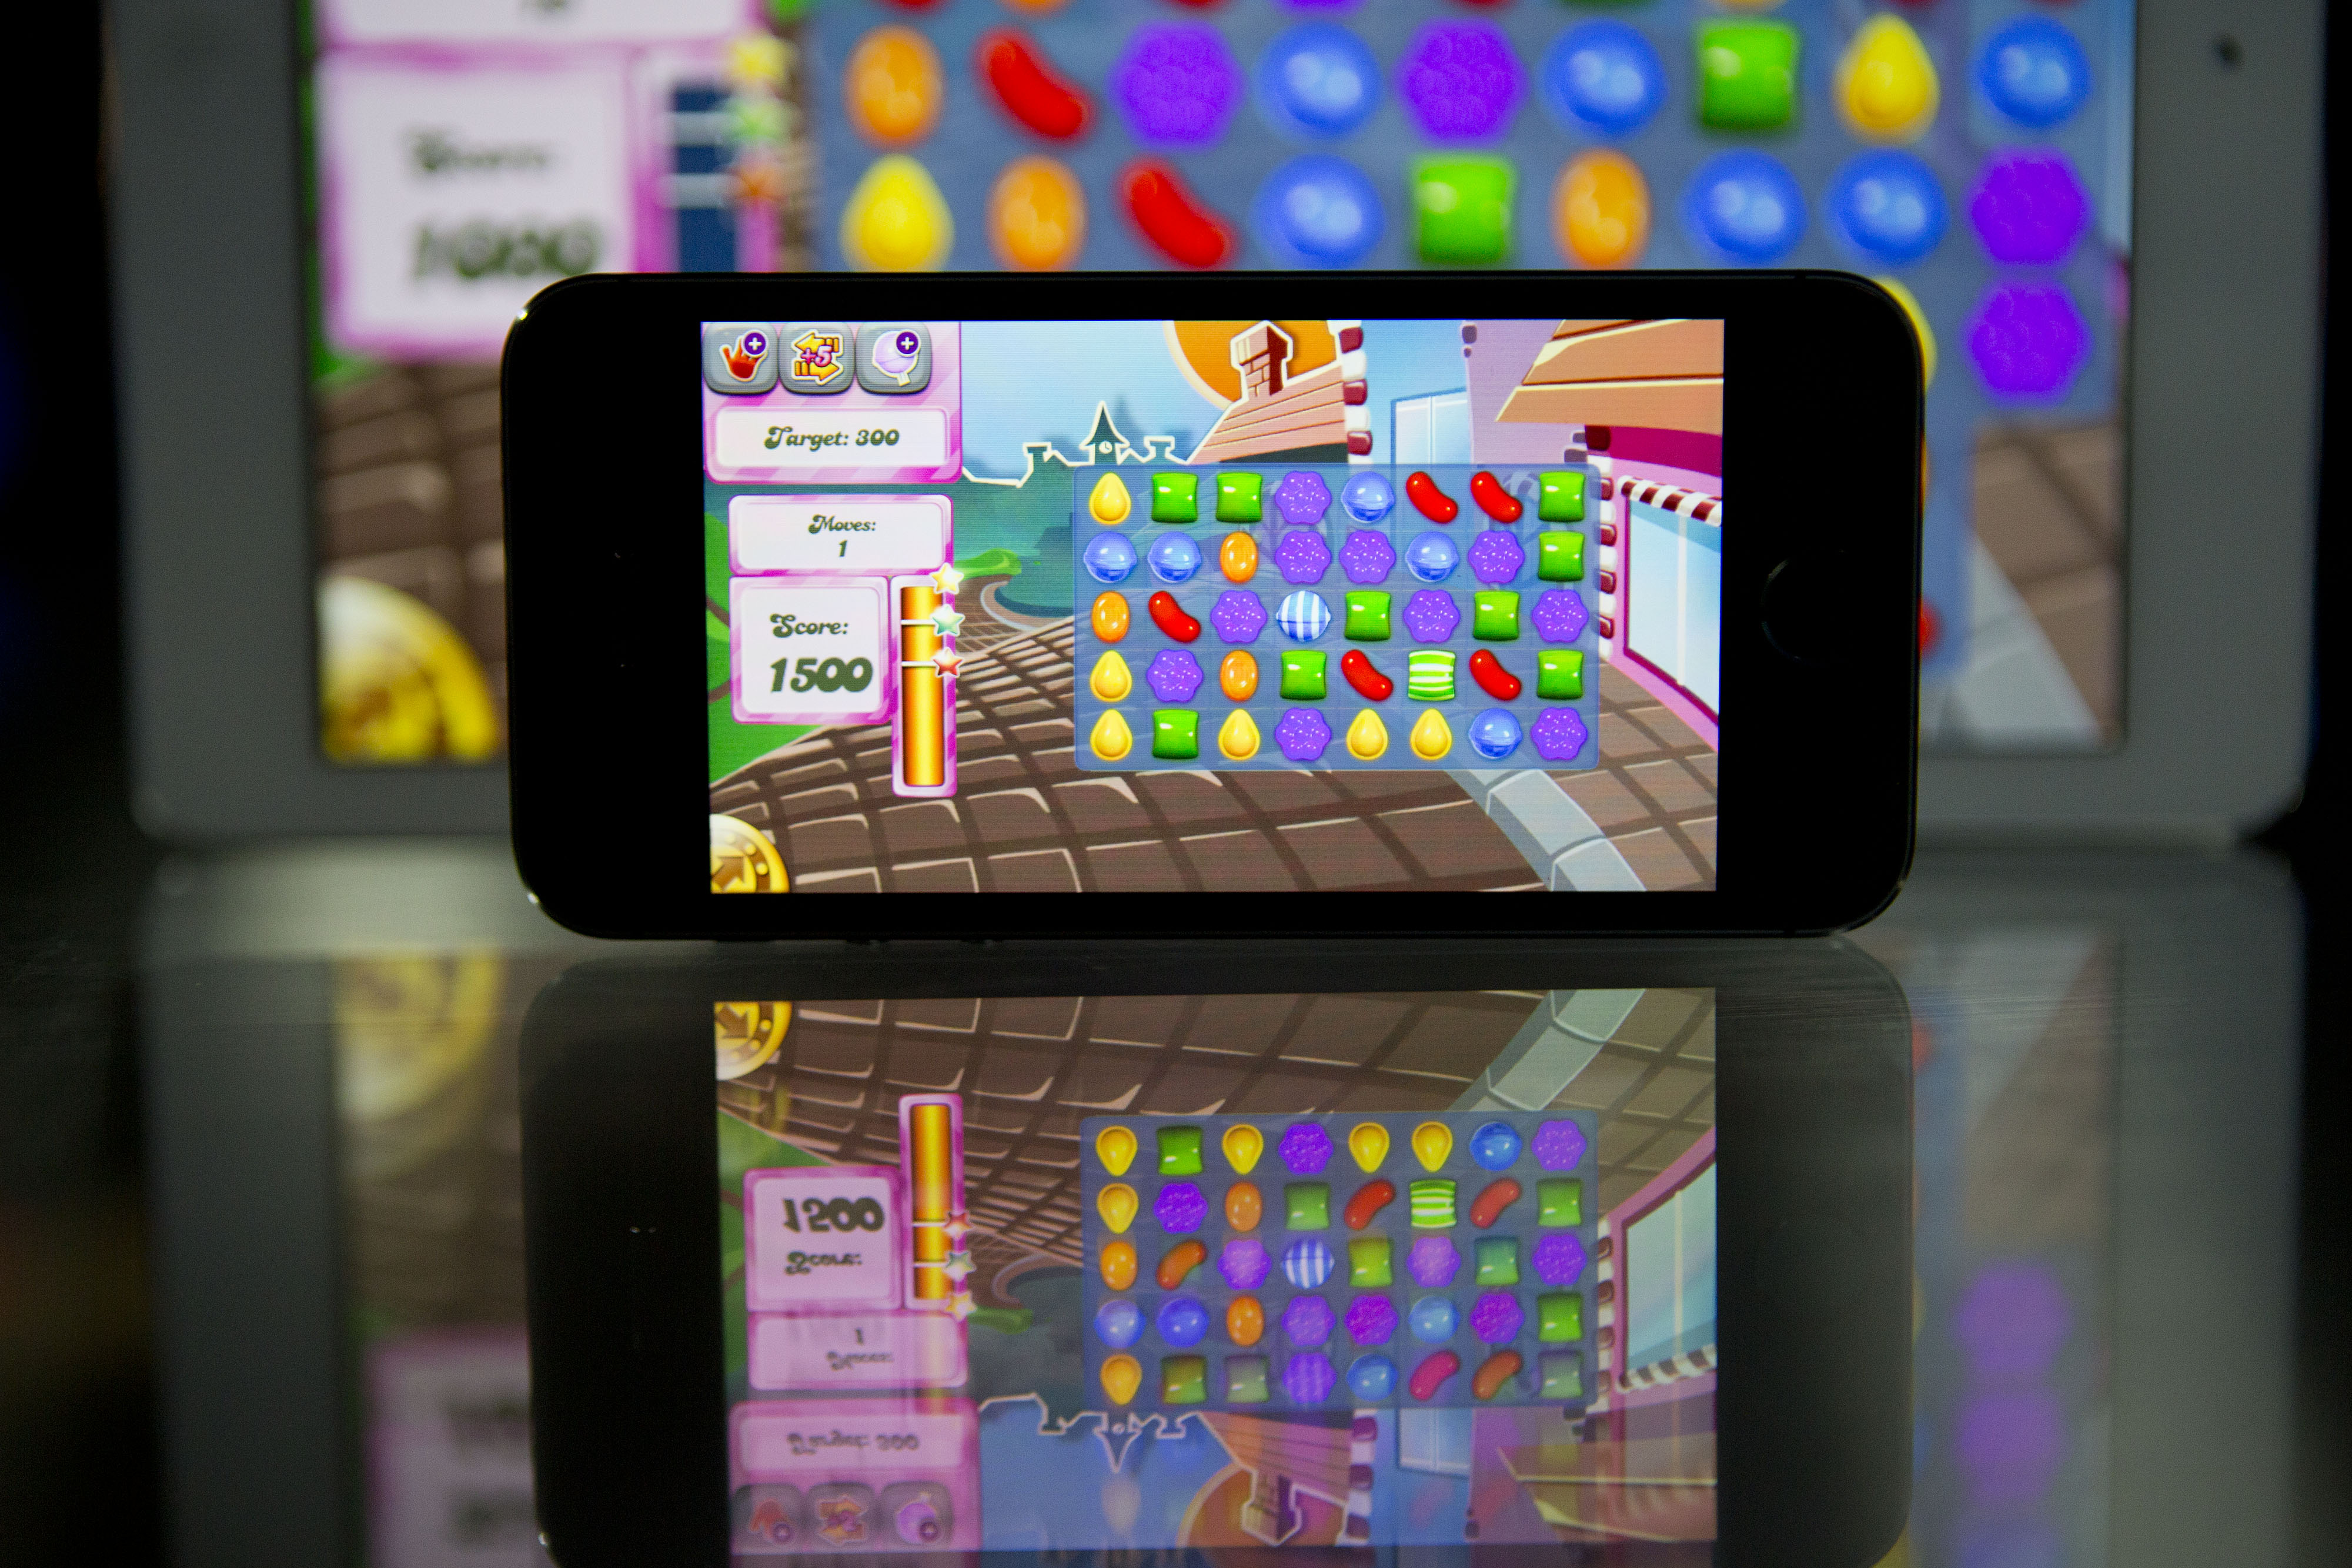 The  Candy Crush Saga  game is displayed on an Apple Inc. iPhone 5s and iPad Air in this arranged photograph in Washington, D.C., U.S., on Tuesday, Feb. 18, 2014.